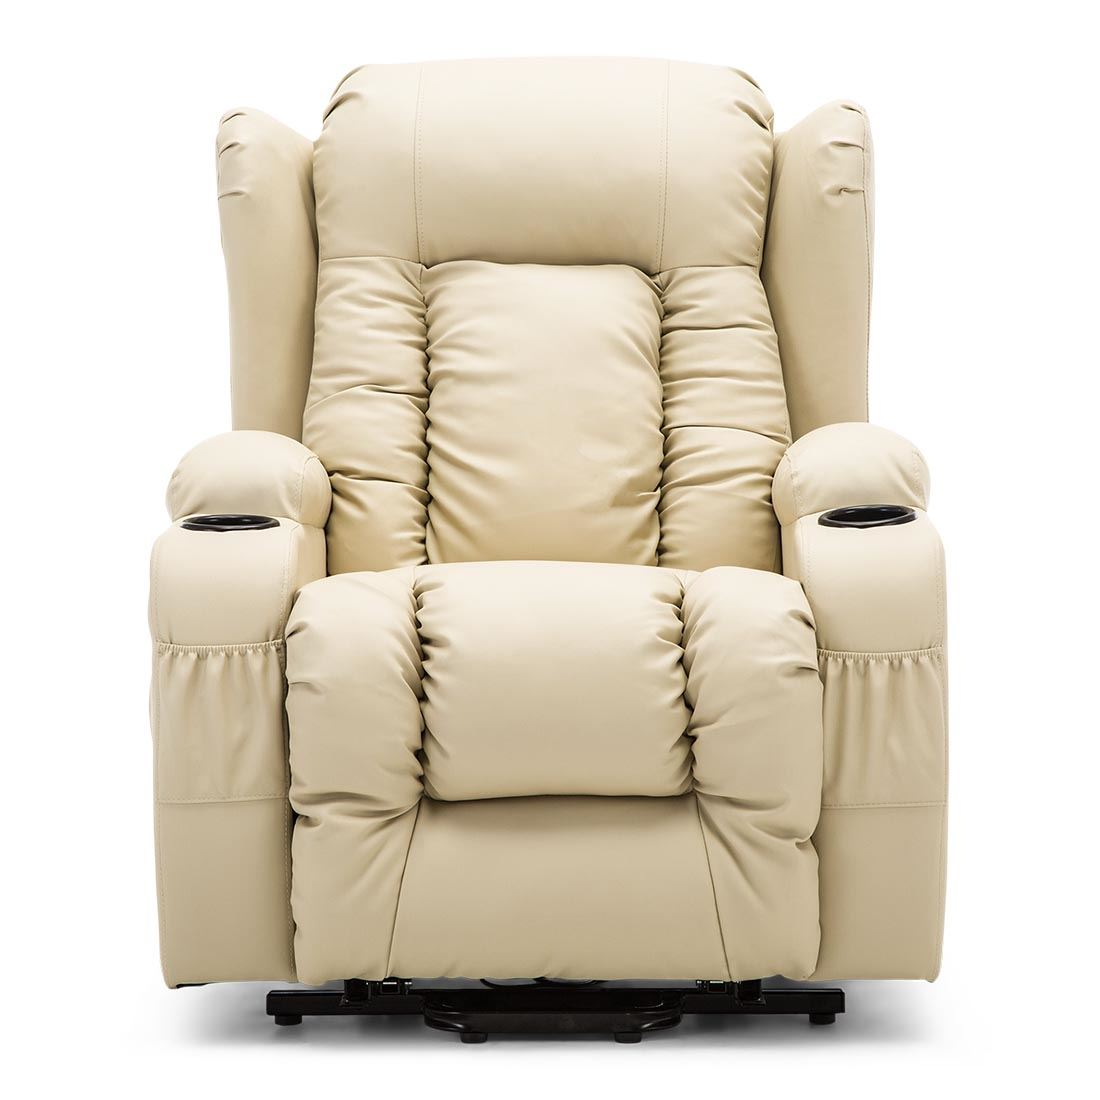 CAESAR-DUAL-MOTOR-RISER-RECLINER-LEATHER-MOBILITY-ARMCHAIR-MASSAGE-HEATED-CHAIR thumbnail 22